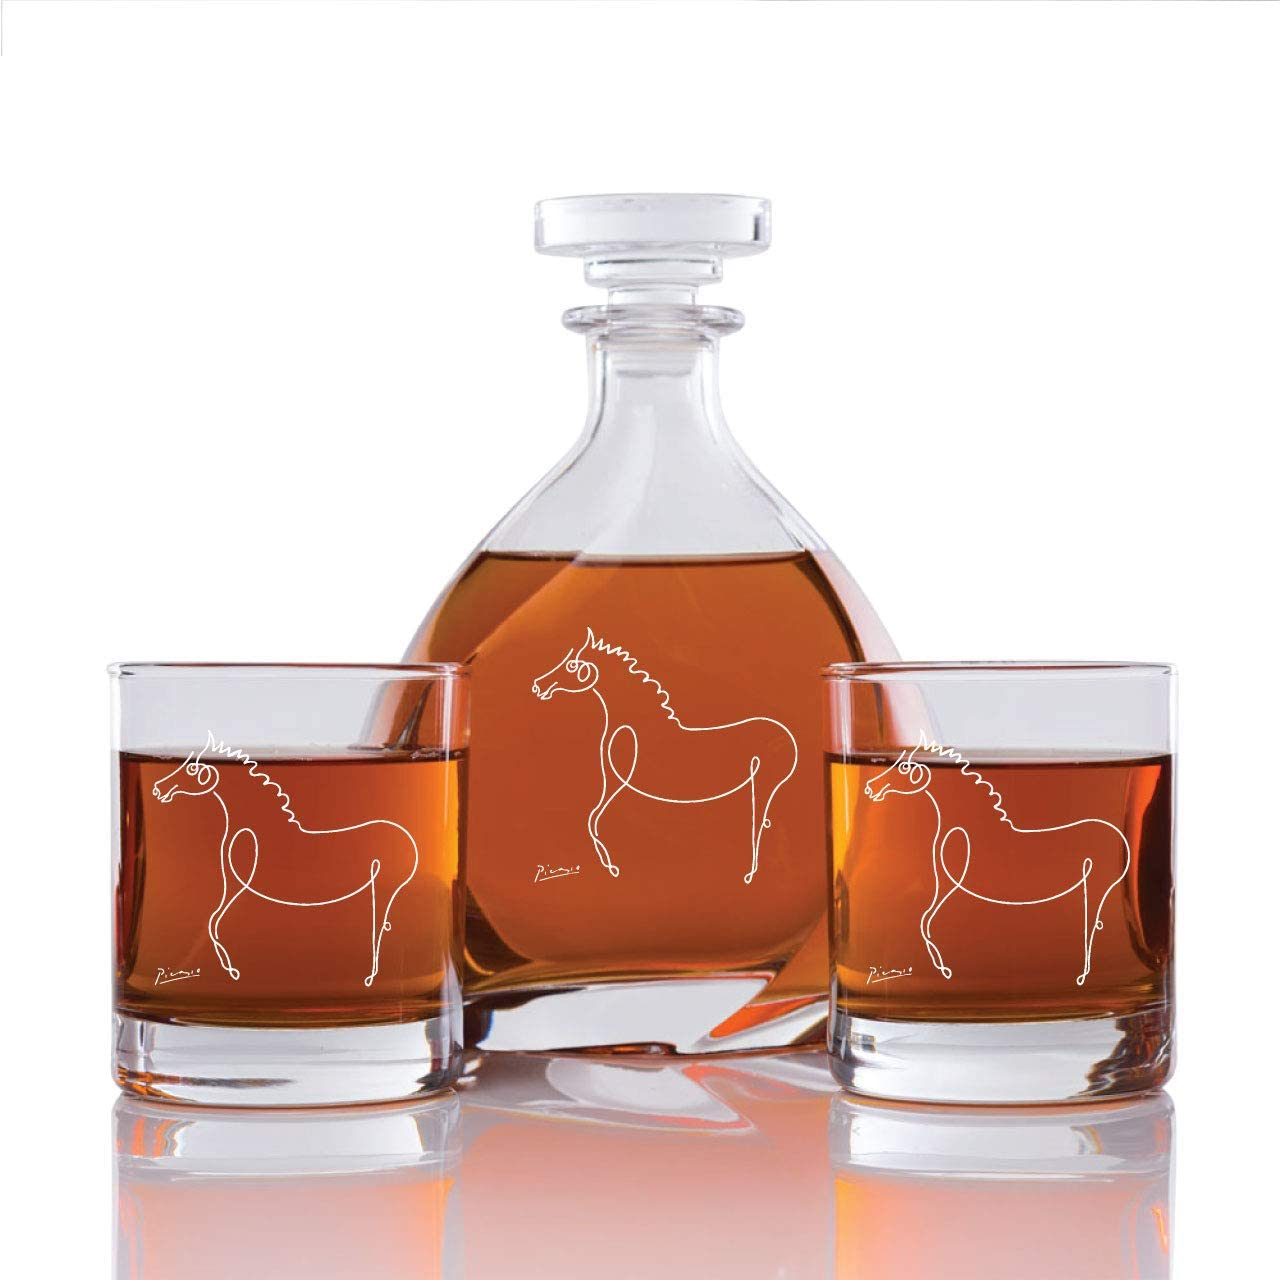 Engraved Picaso Horse - Madison Ave Decanter Set with Rocks Glasses - 3pcs